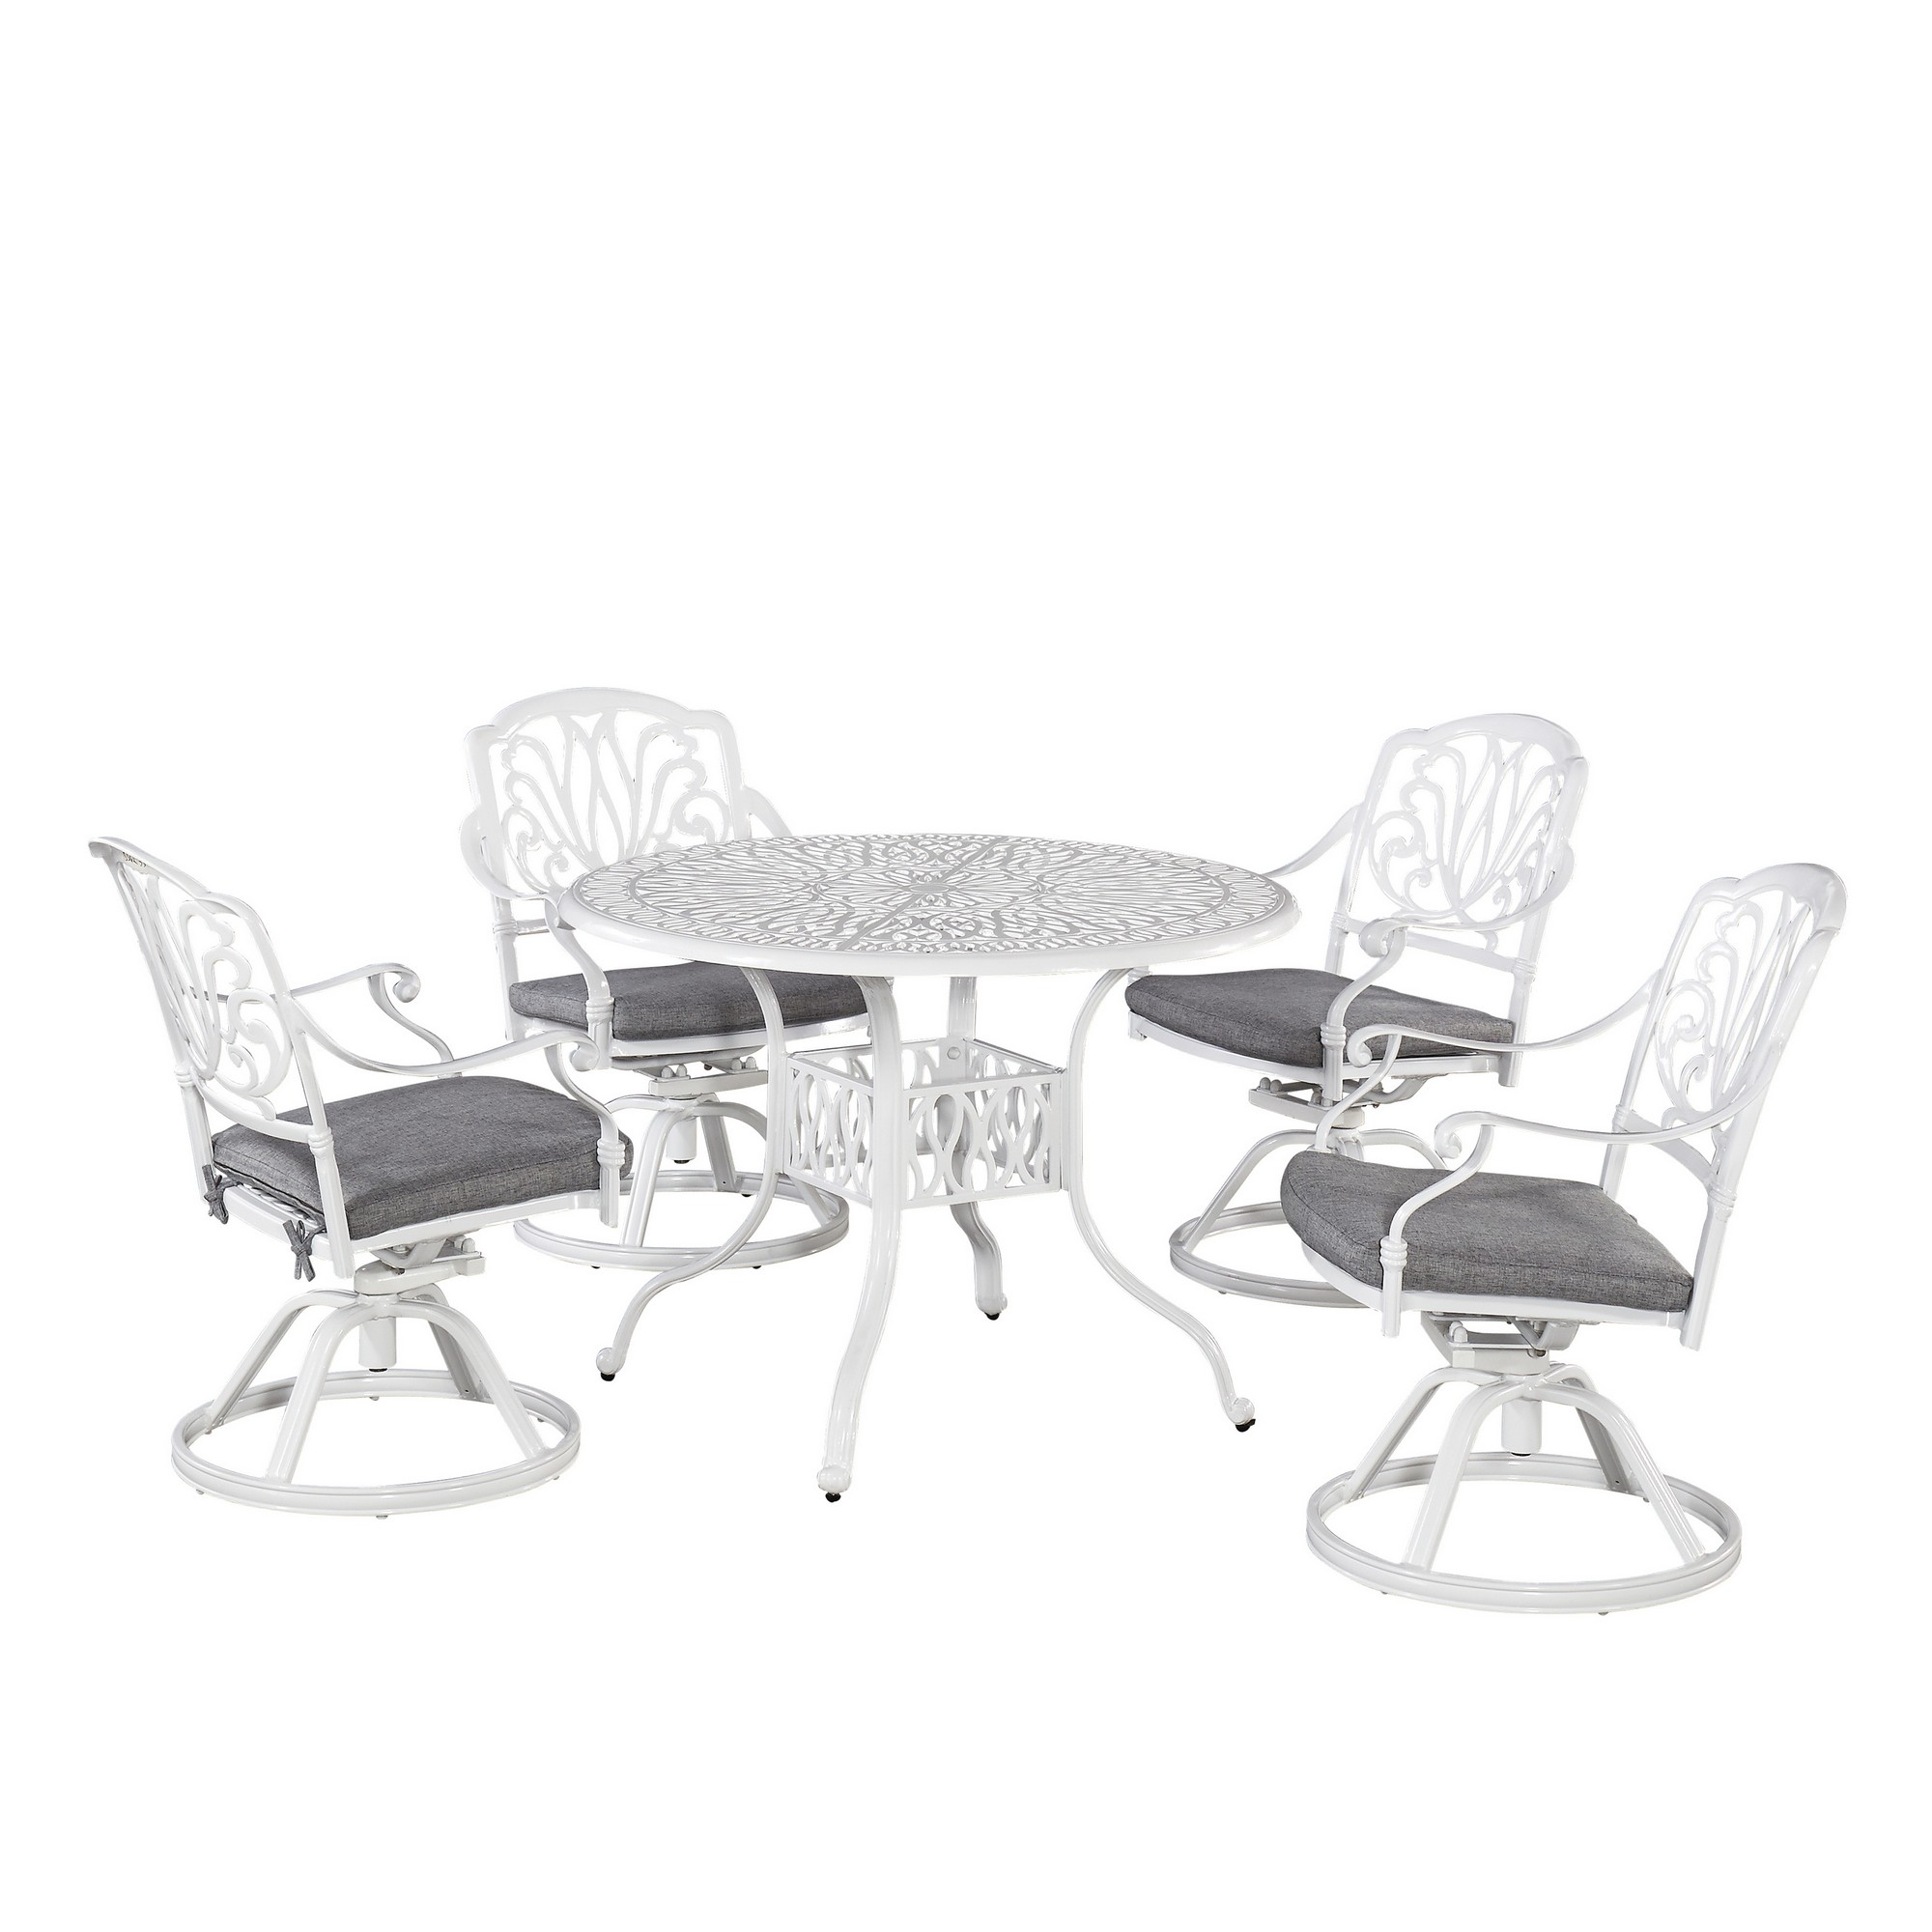 Capri 5 Piece OutdoorDining Set by homestyles at Value City Furniture